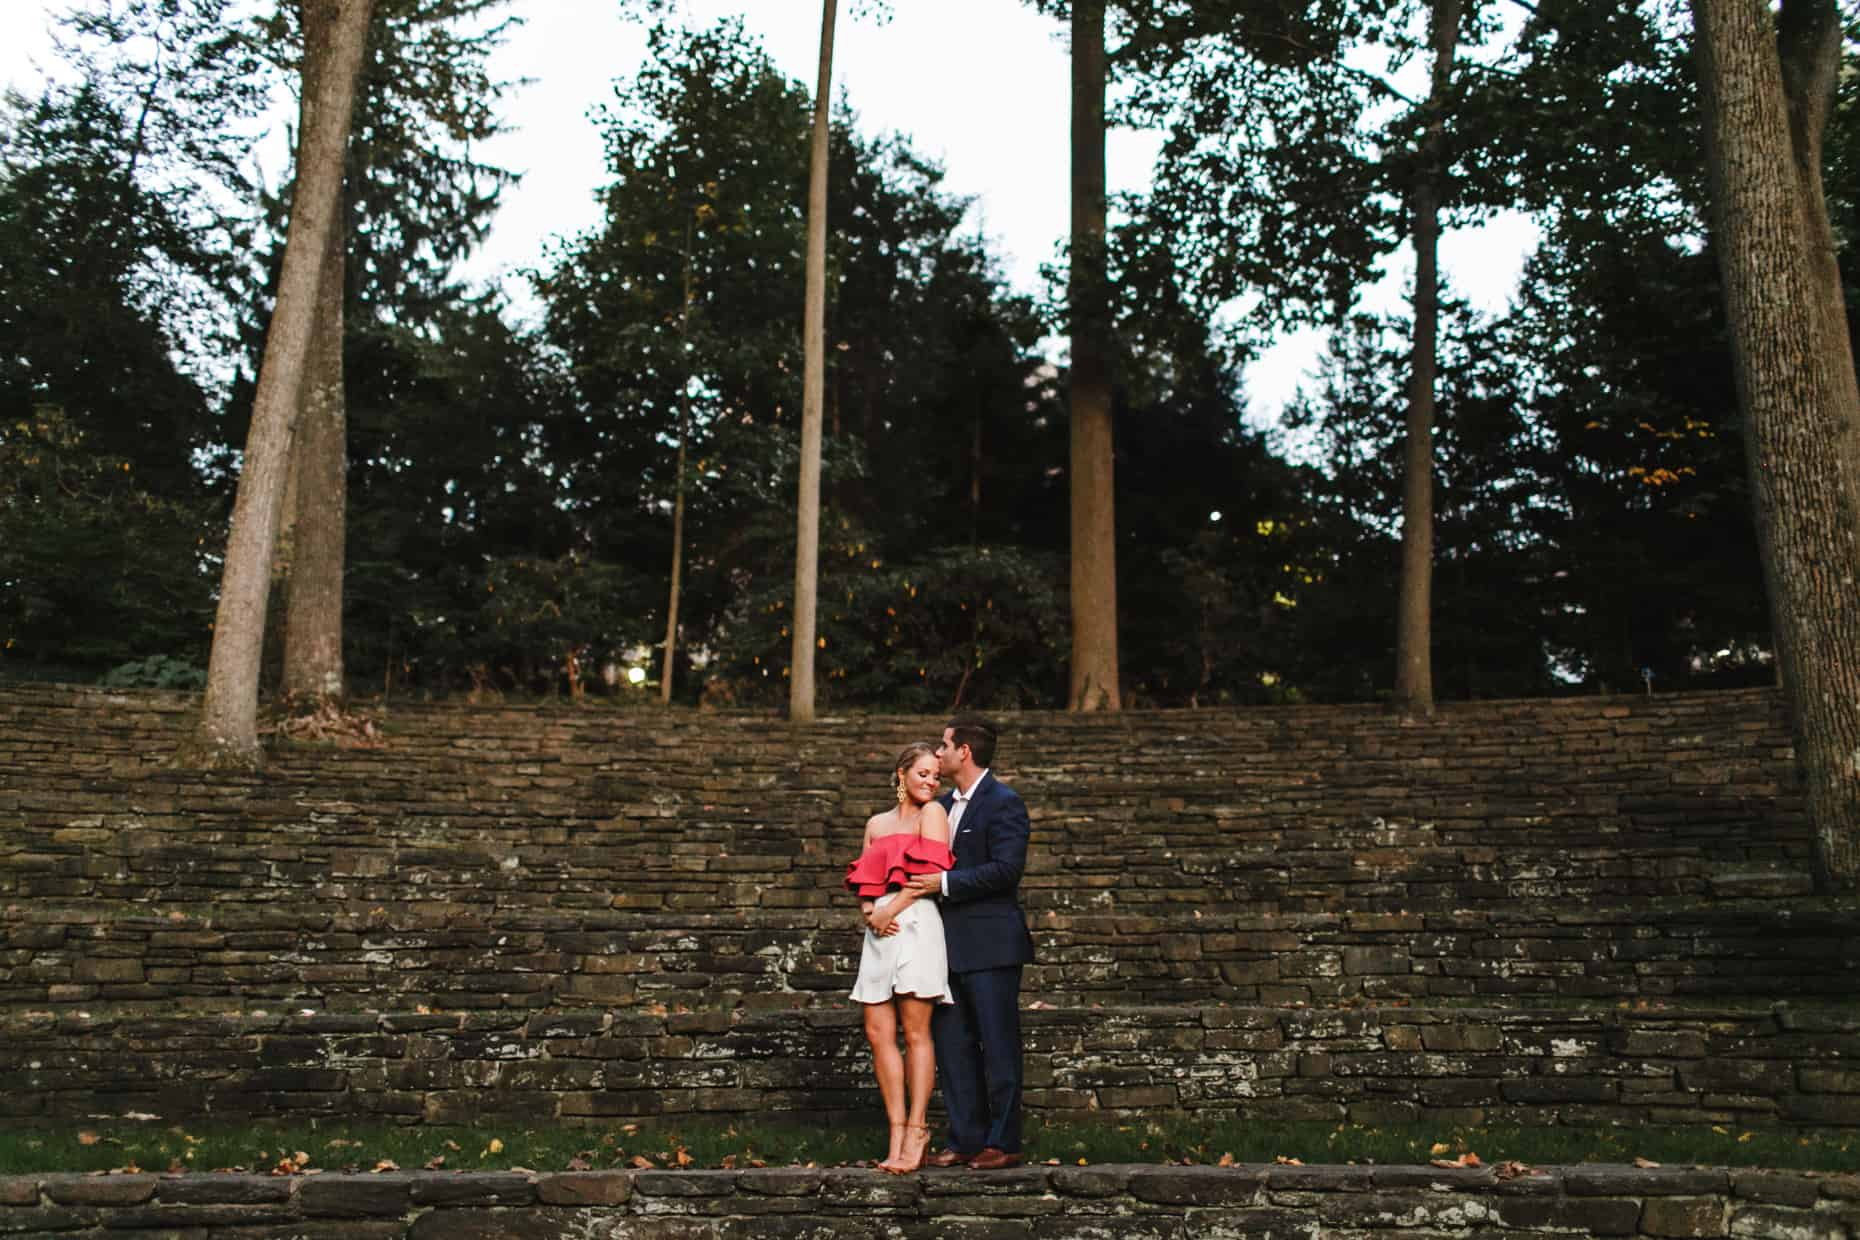 Engagement Sessions Swarthmore College